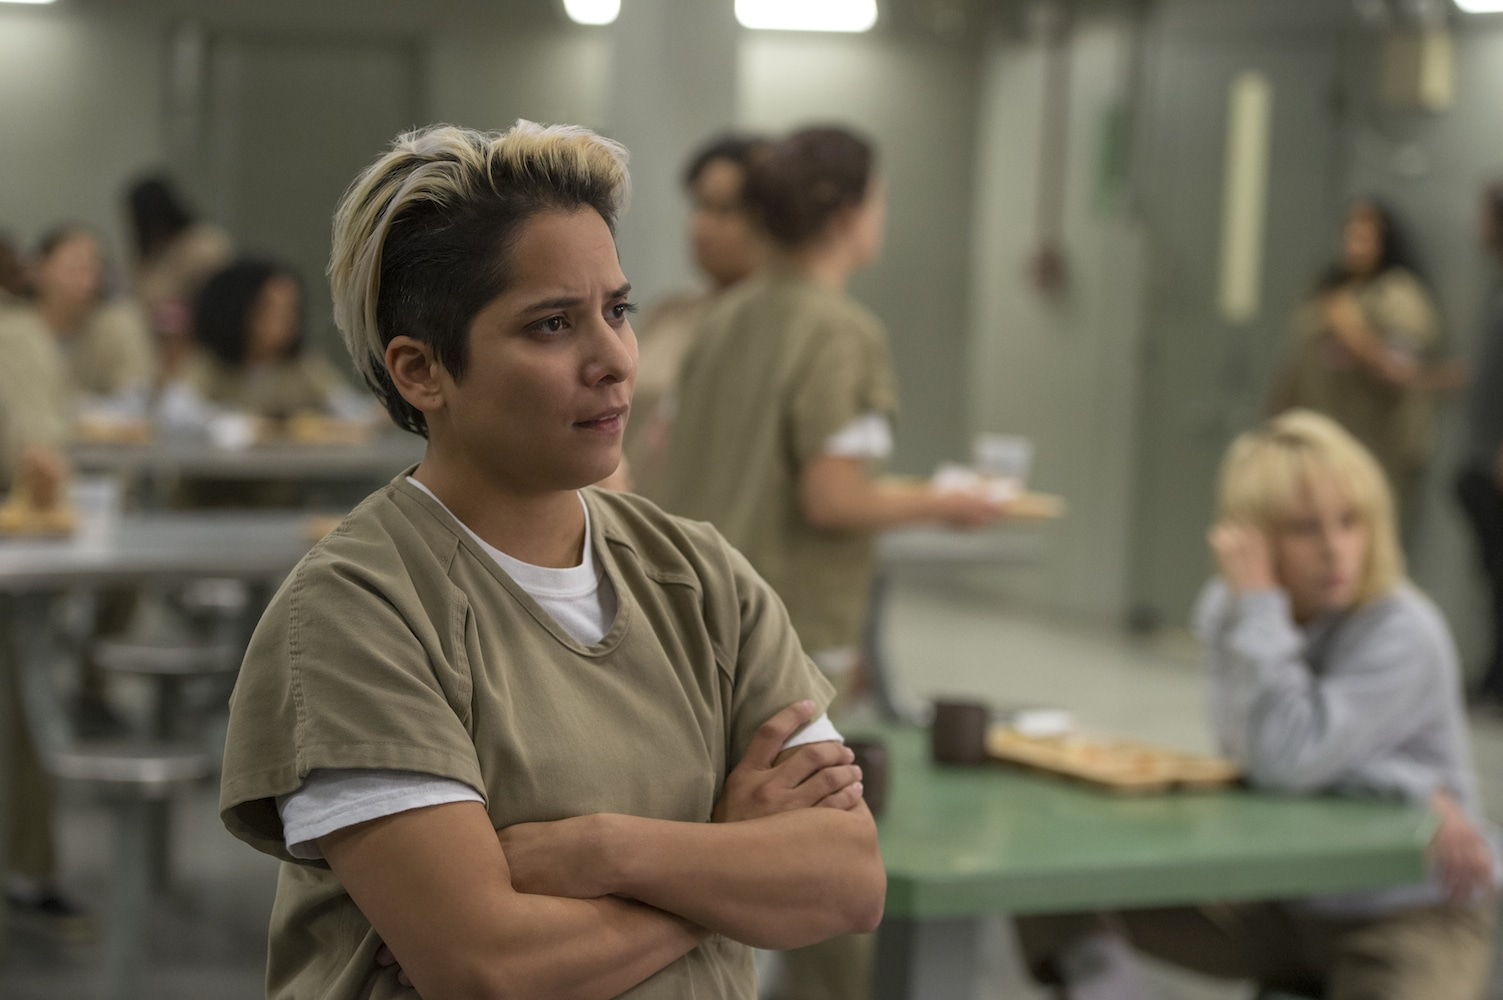 How Vicci Martinez Went From 'The Voice' to Playing Daddy on 'Orange Is the New Black'